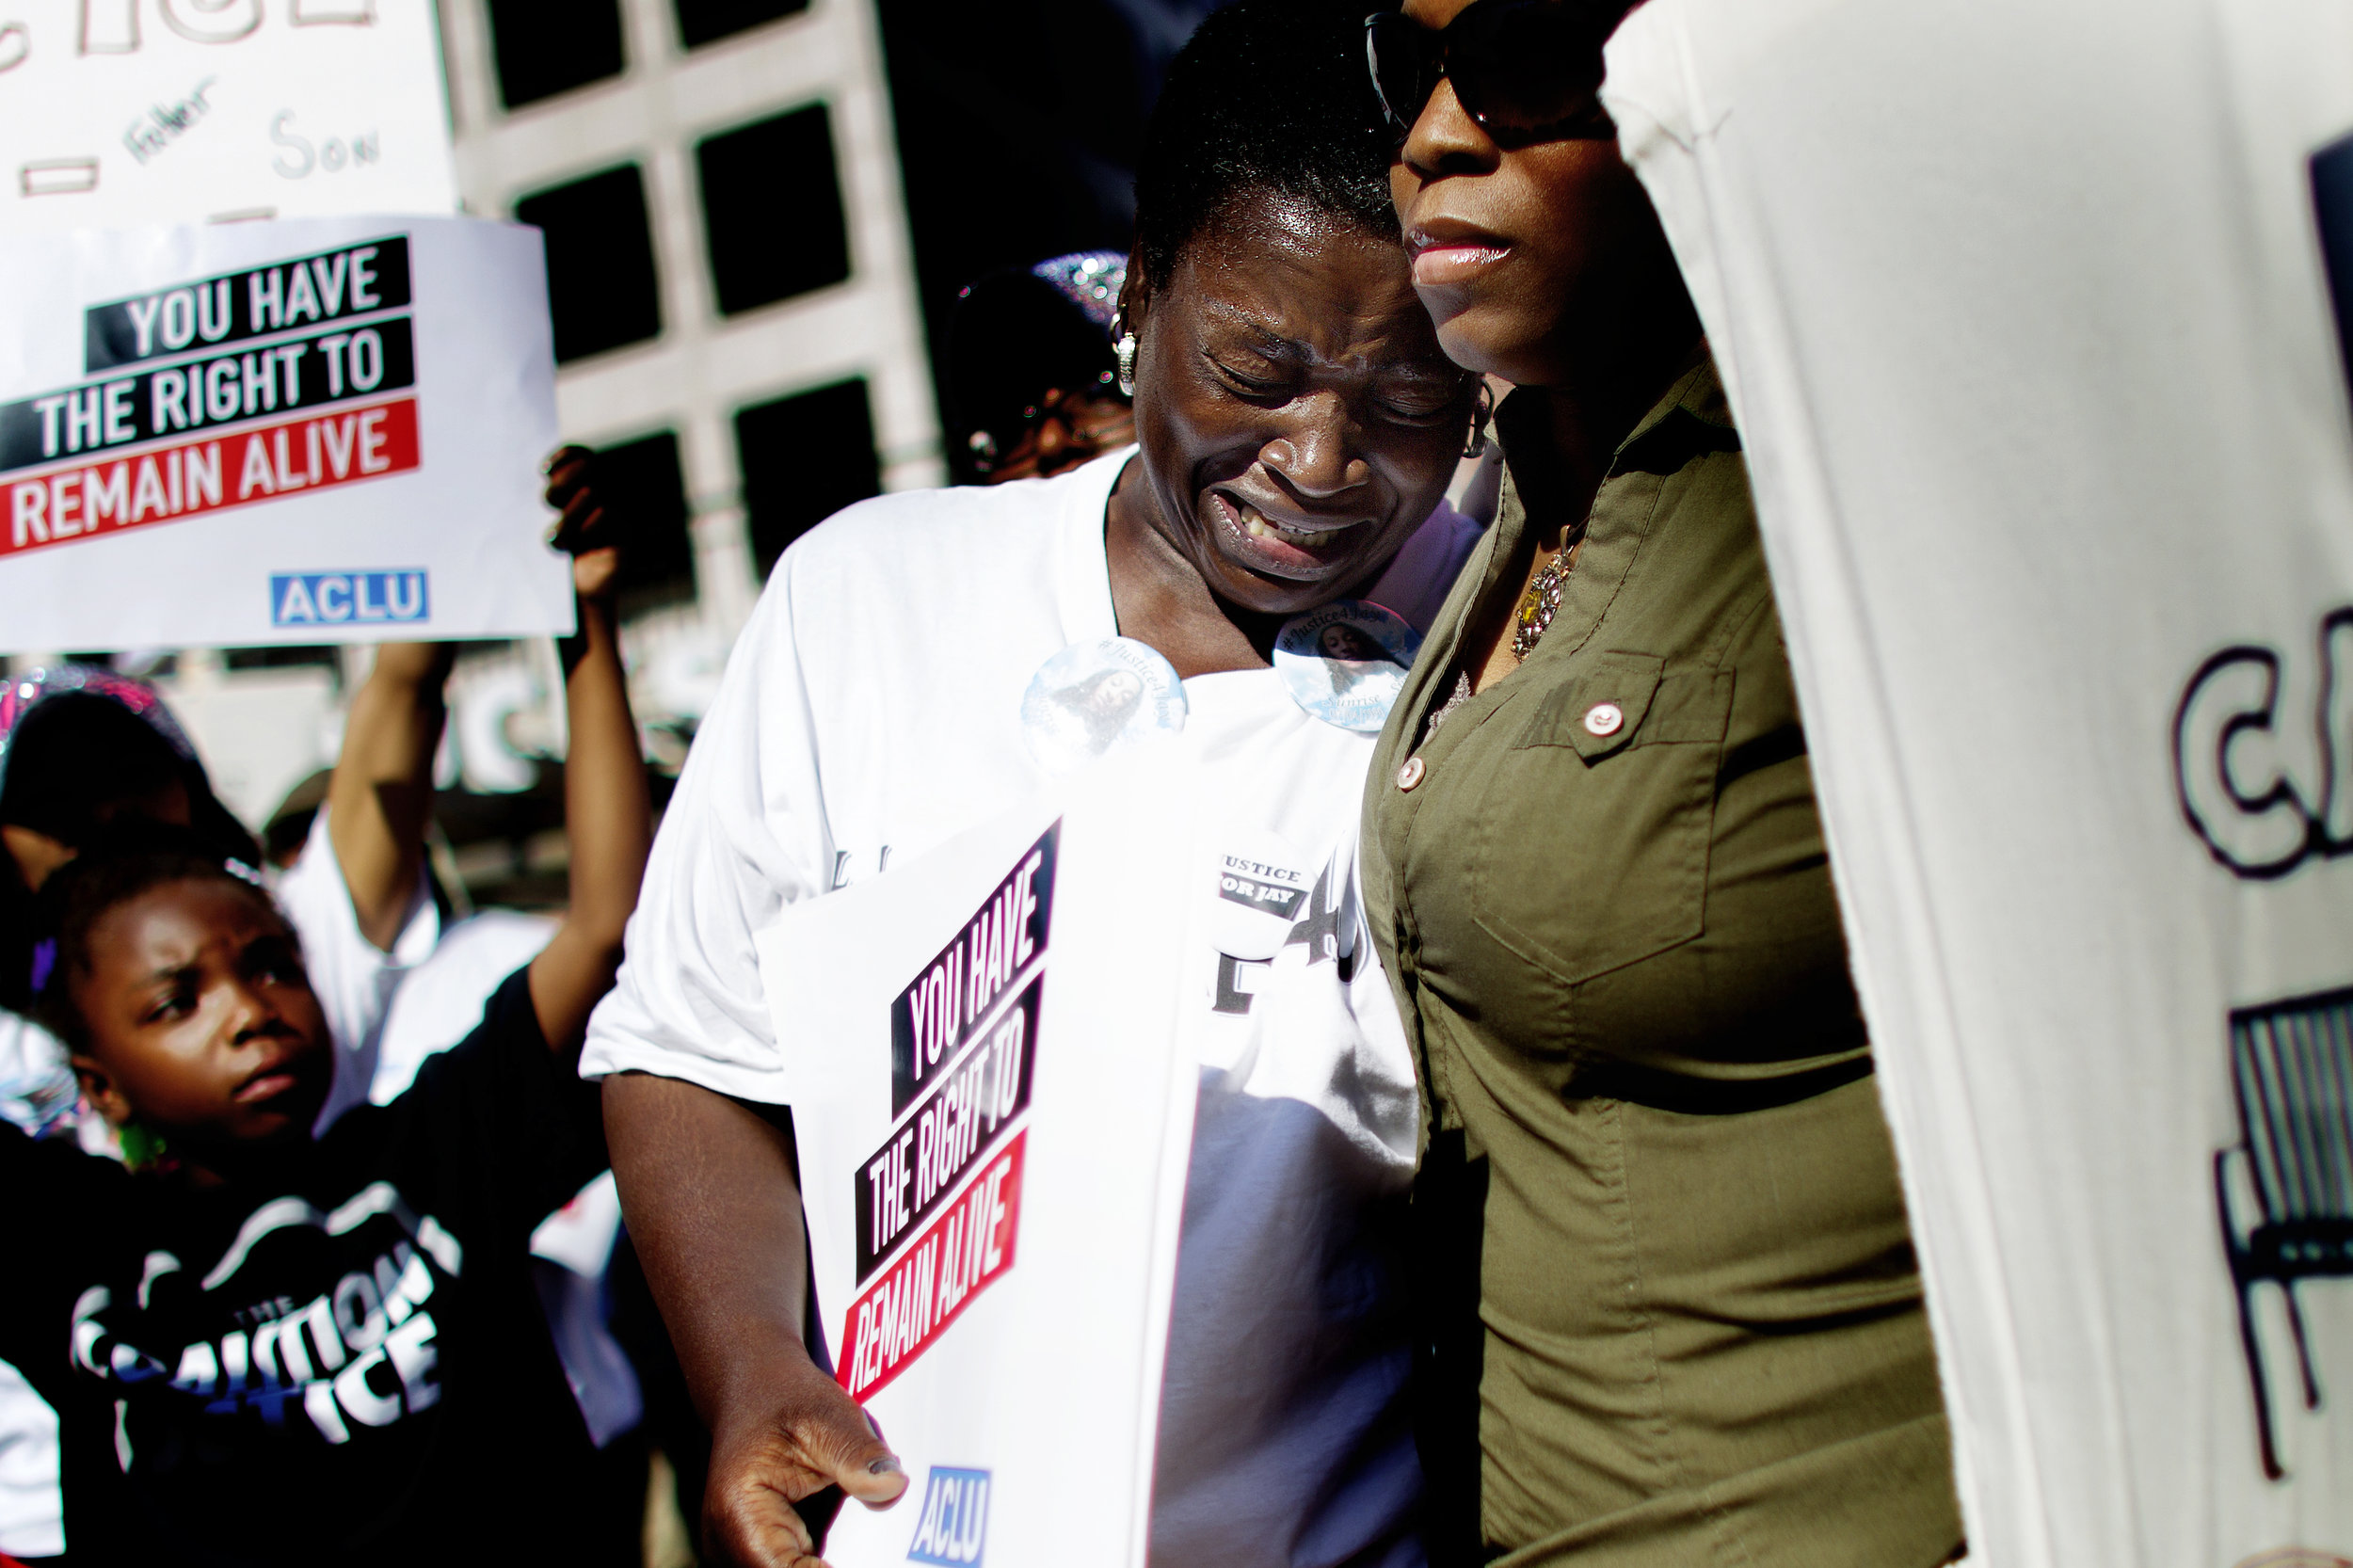 Gloria Speed, aunt of Jay Anderson, who was shot and killed by a Wauwatosa Police officer in the early morning hours of June 23rd, is comforted during a Coalition for Justice rally at Red Arrow Park in downtown Milwaukee.